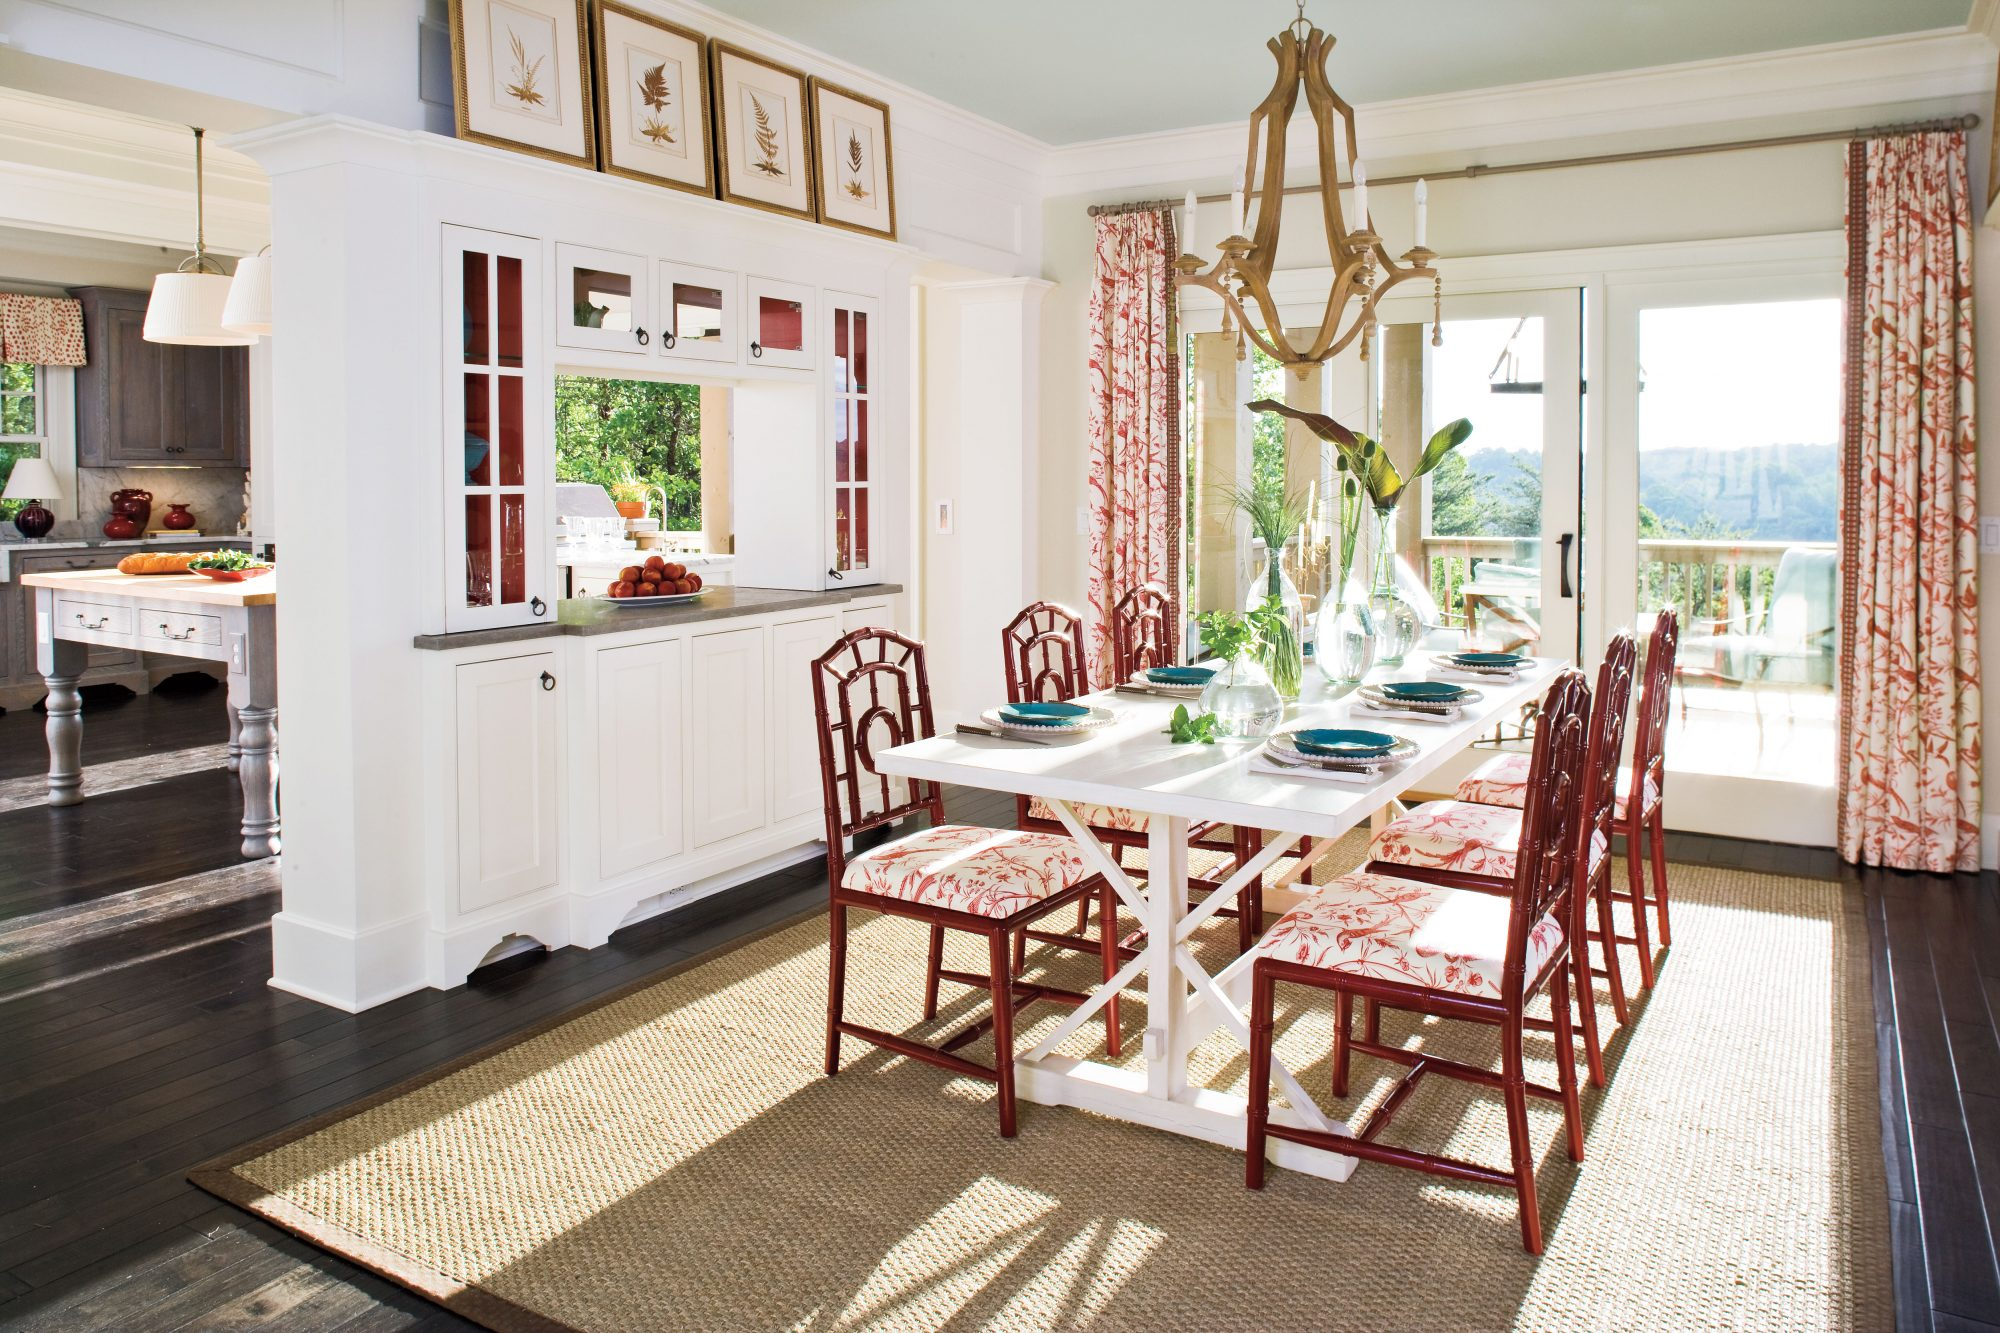 Furniture & Design stylish dining room decorating ideas - southern living